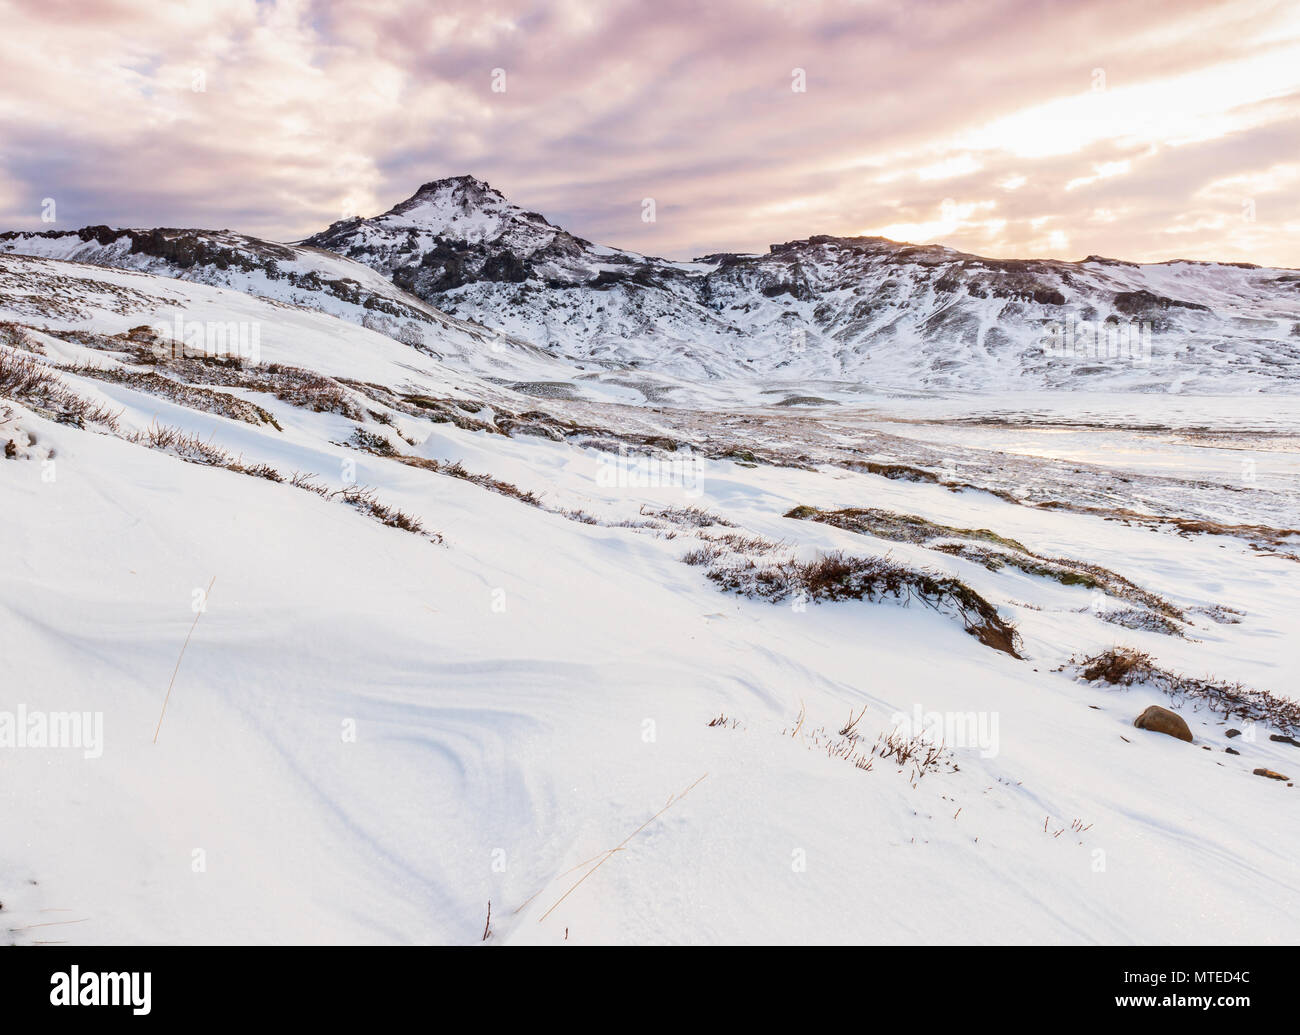 Volcanic landscape with snow, evening mood, Mount Horn, West Iceland, Vesturland, Iceland - Stock Image